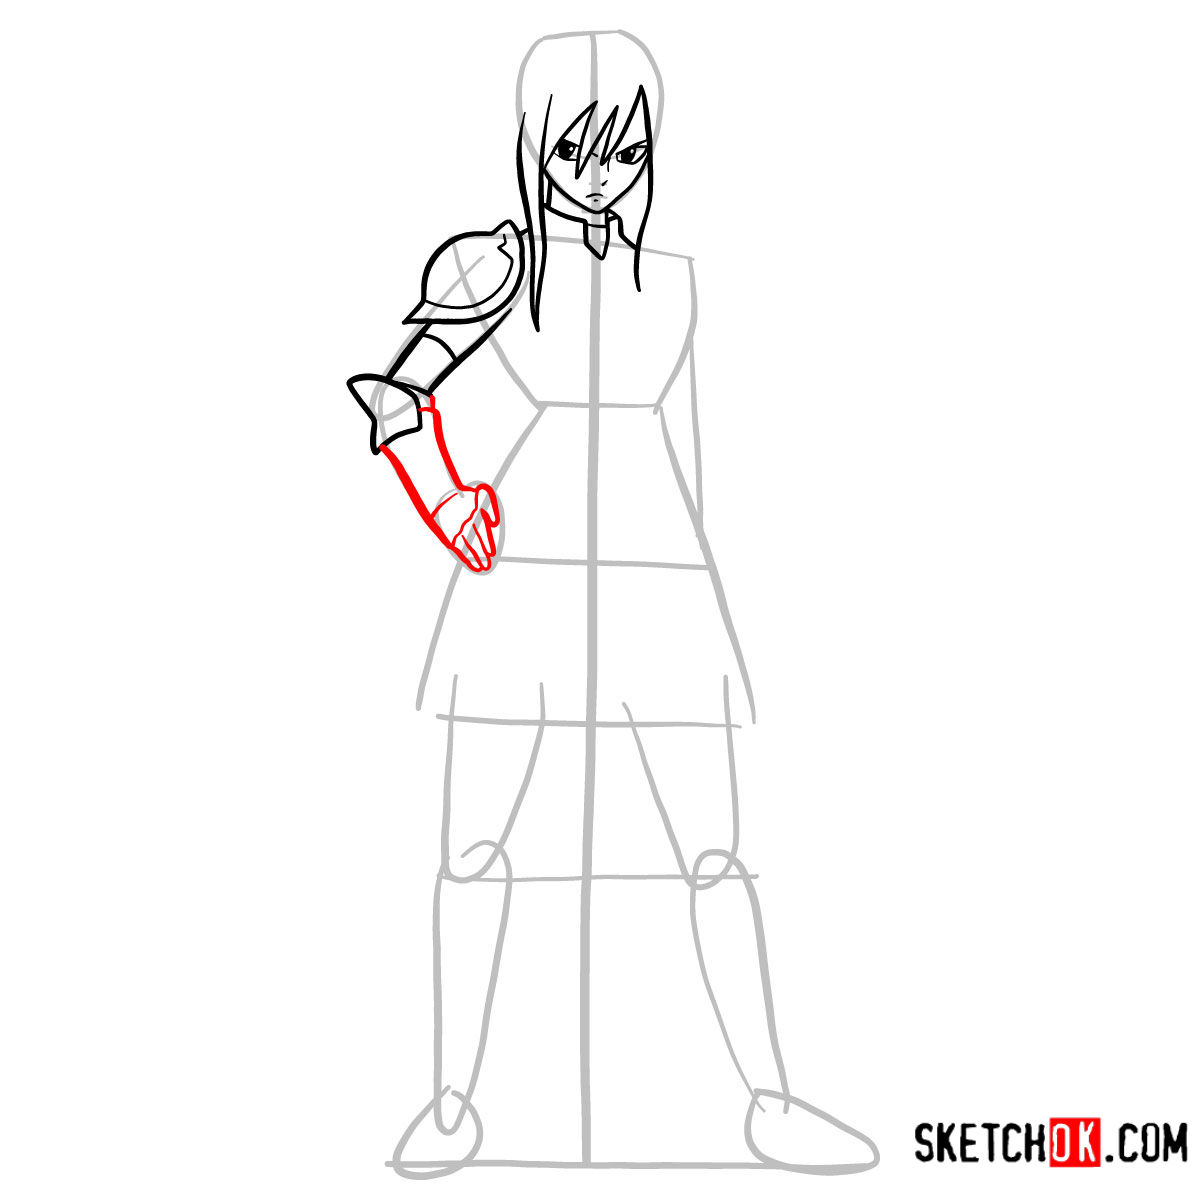 15 steps drawing tutorial of Erza Scarlet (fairy tail) - step 07